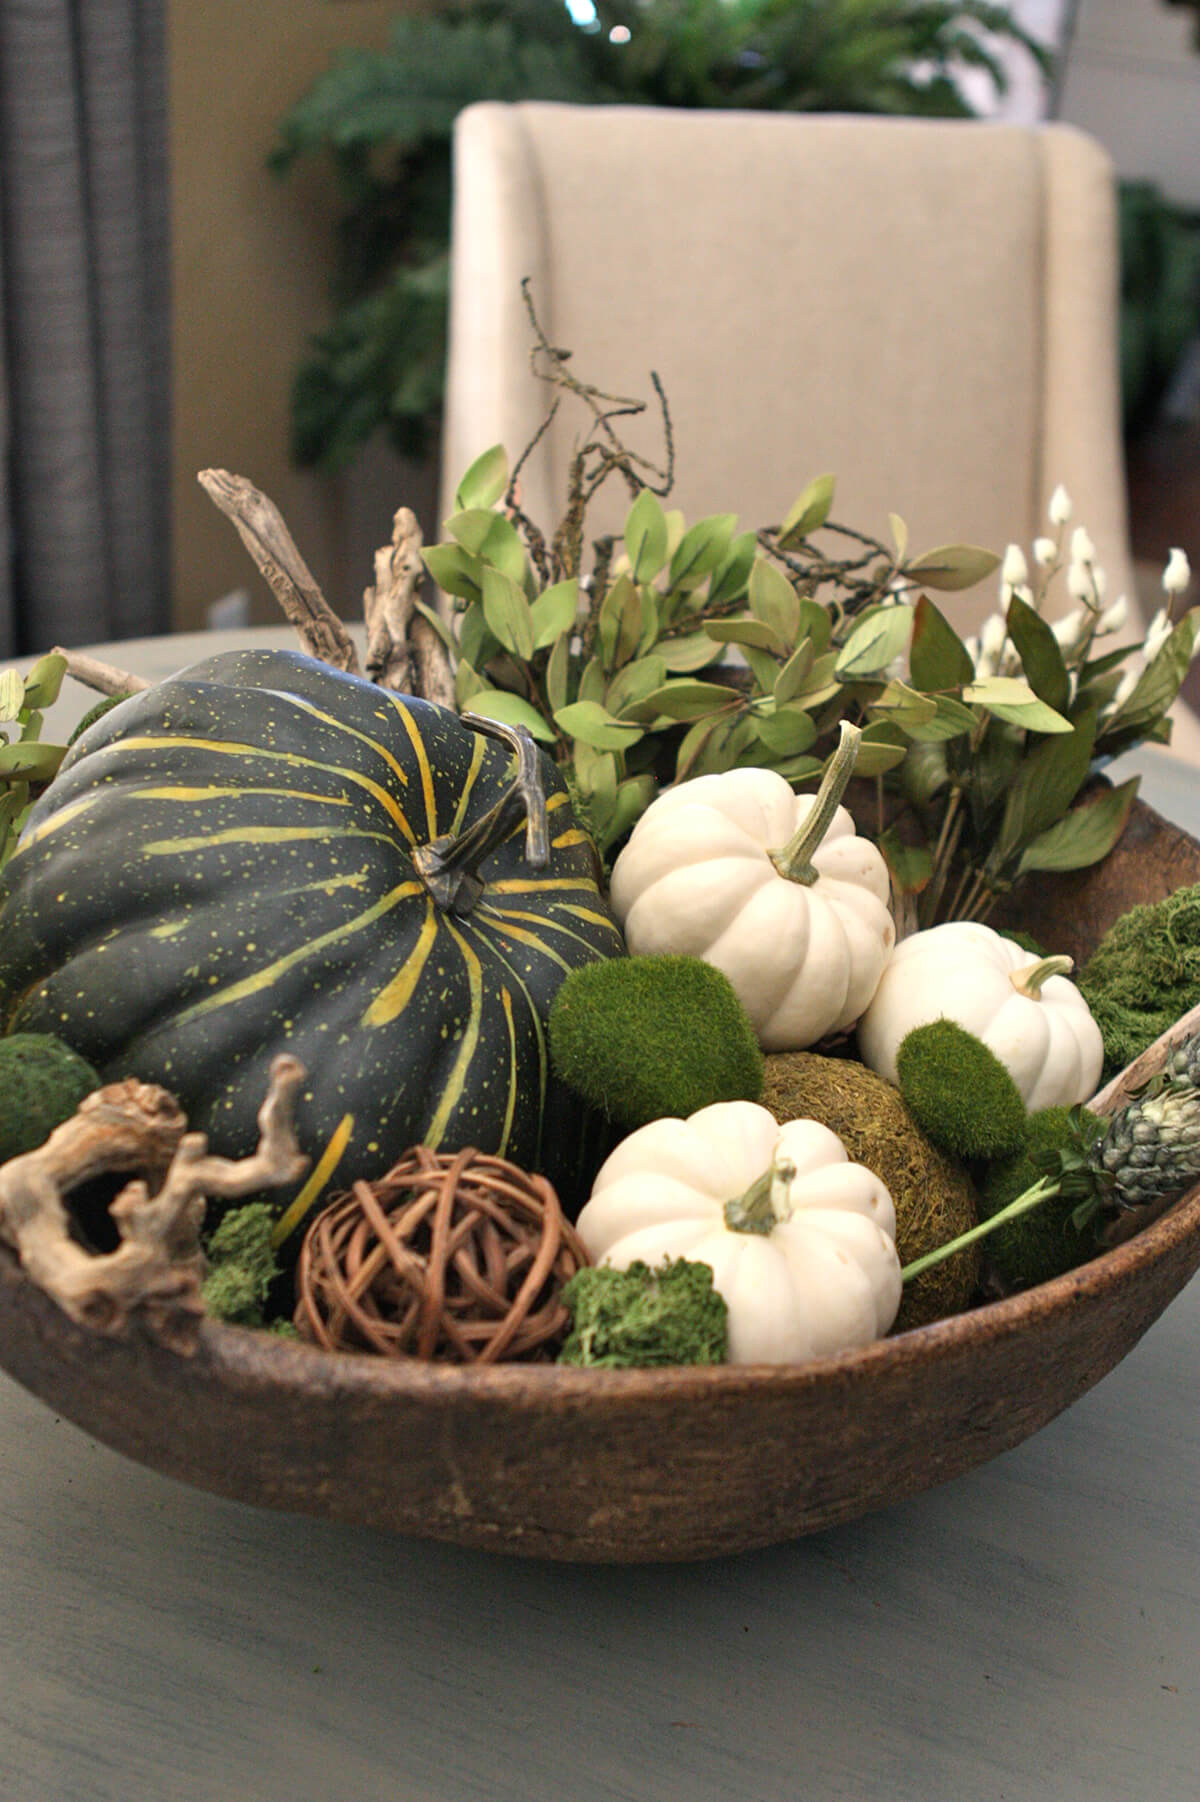 Pumpkins Plus Rustic Elements Make Unique Centerpiece